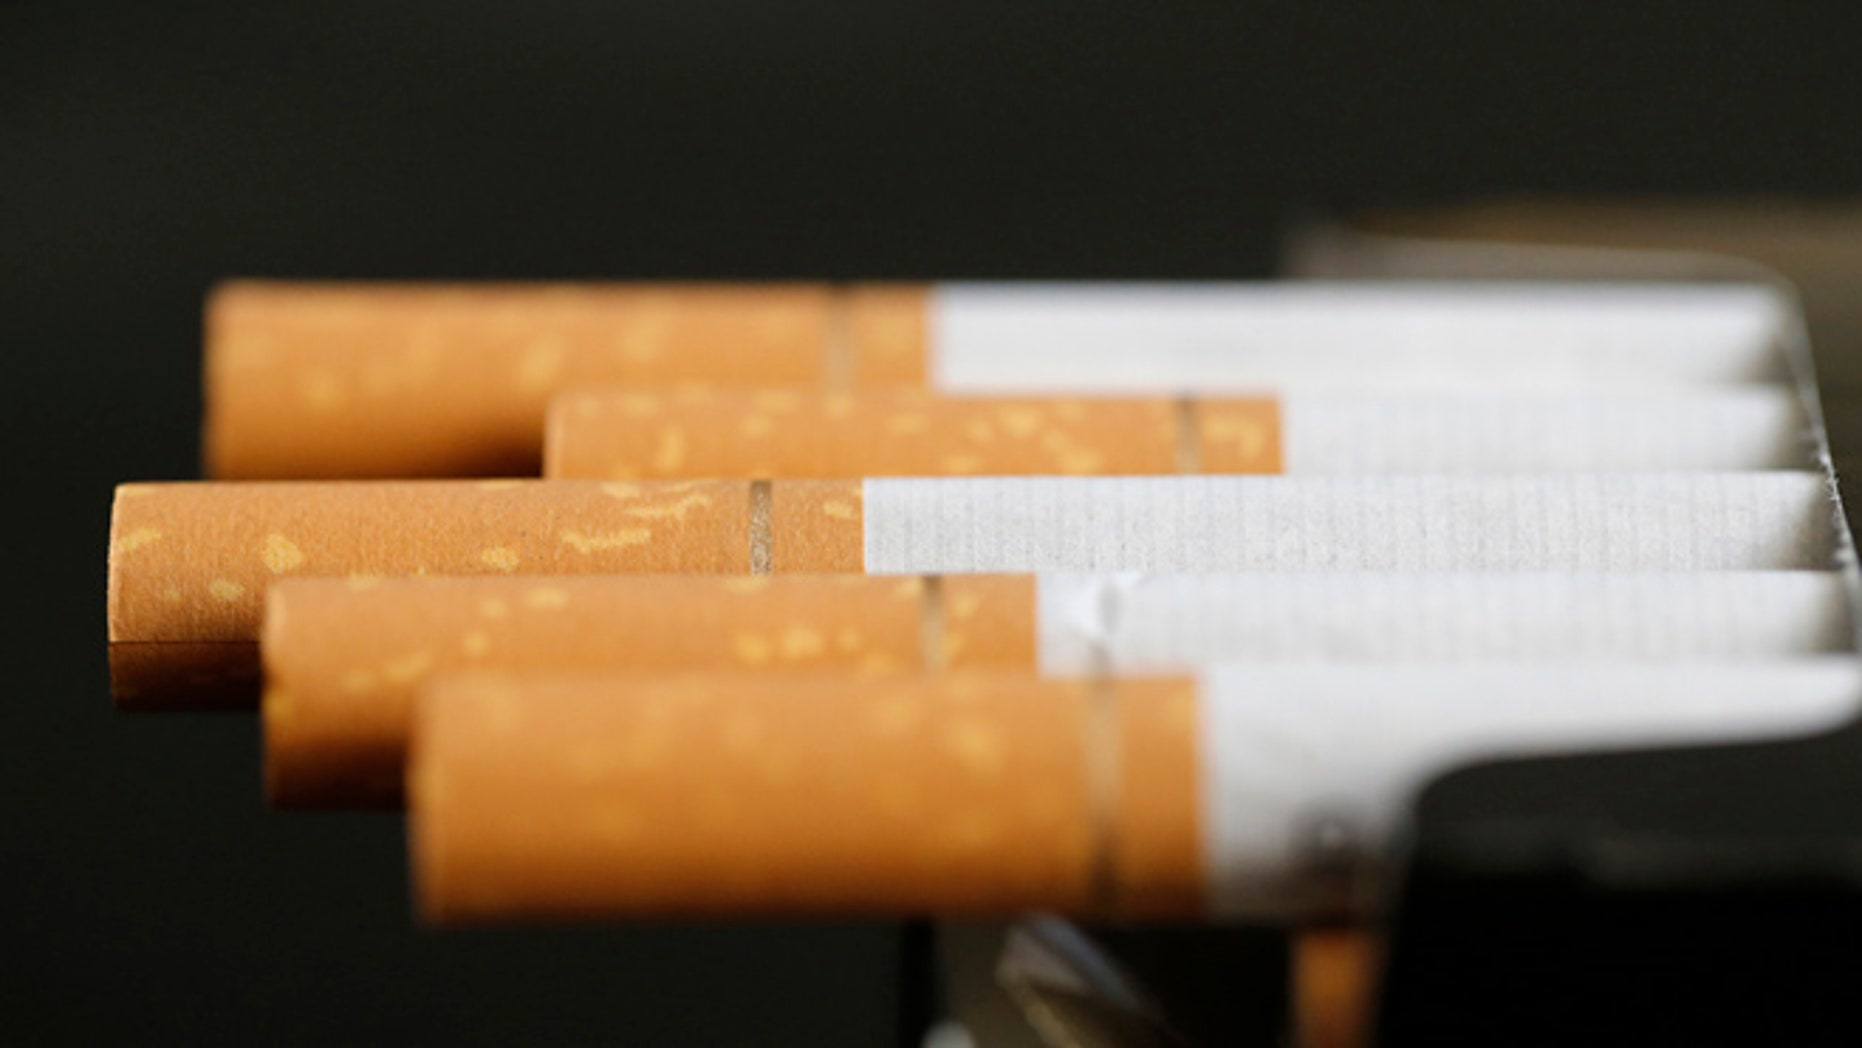 An illustration pictures shows cigarettes in their package.